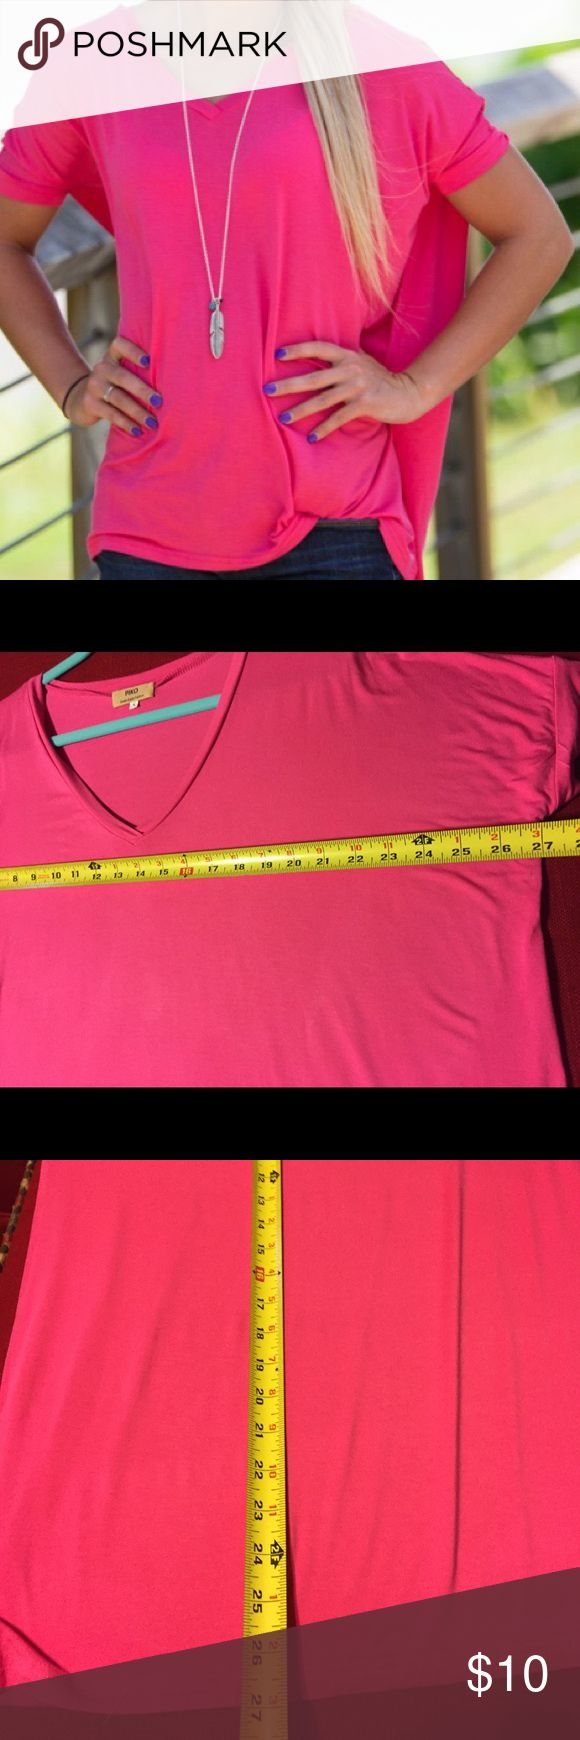 Piko hot pink, short sleeve, v-neck top So soft! Piko has the perfect fabric recipe for comfort: 95% bamboo and 5% spandex. This v-neck, short sleeve hot pink top has a slouchy, oversized fit and fitted sleeves. Wear it casual or dress it up! Great condition! Piko Tops Tees - Short Sleeve